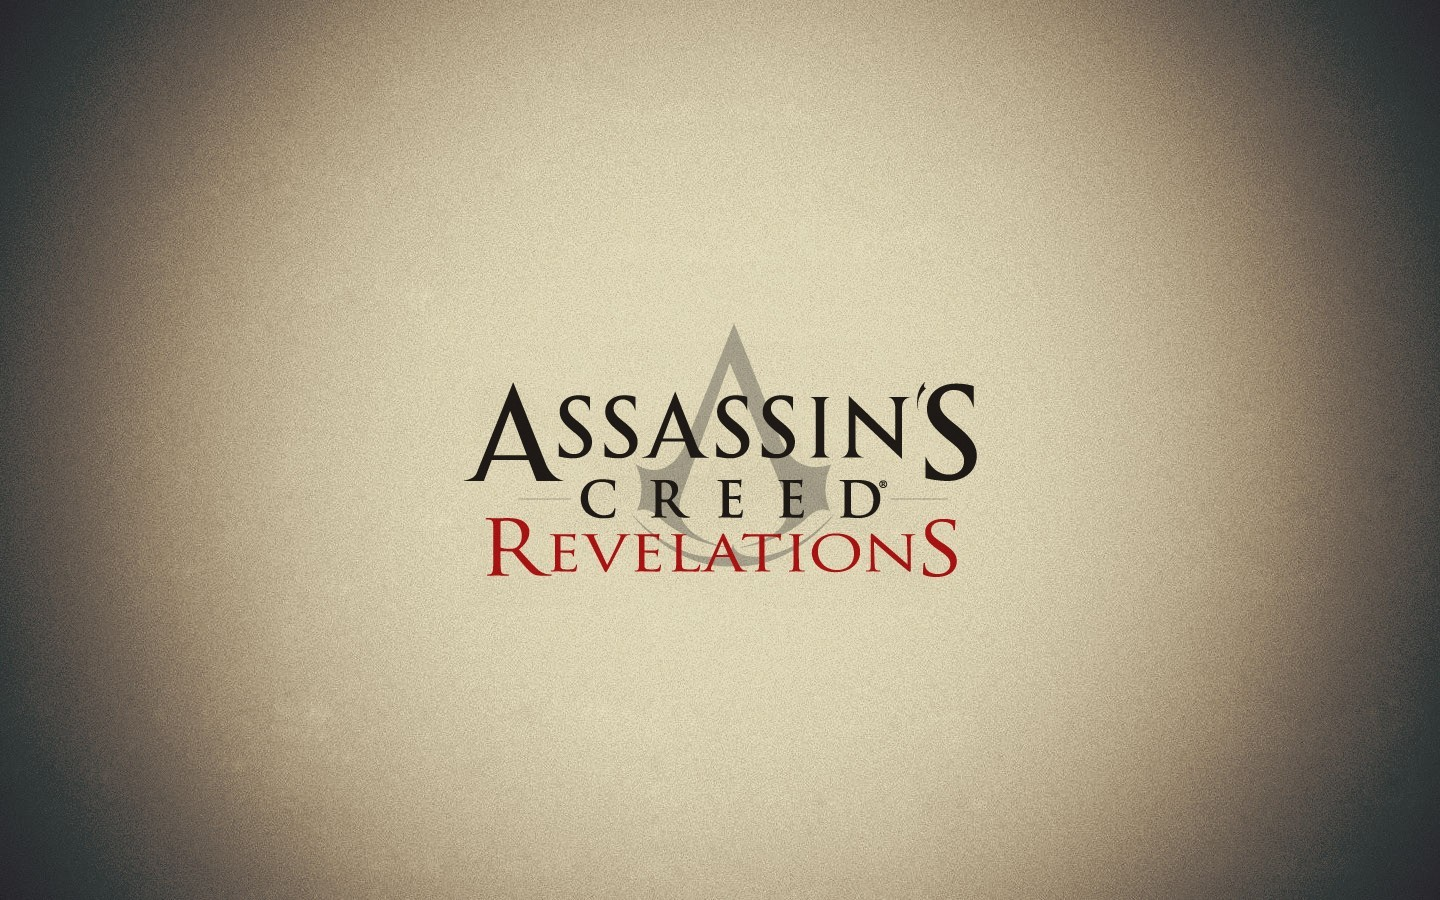 assassins creed assassins emblems HD Wallpaper